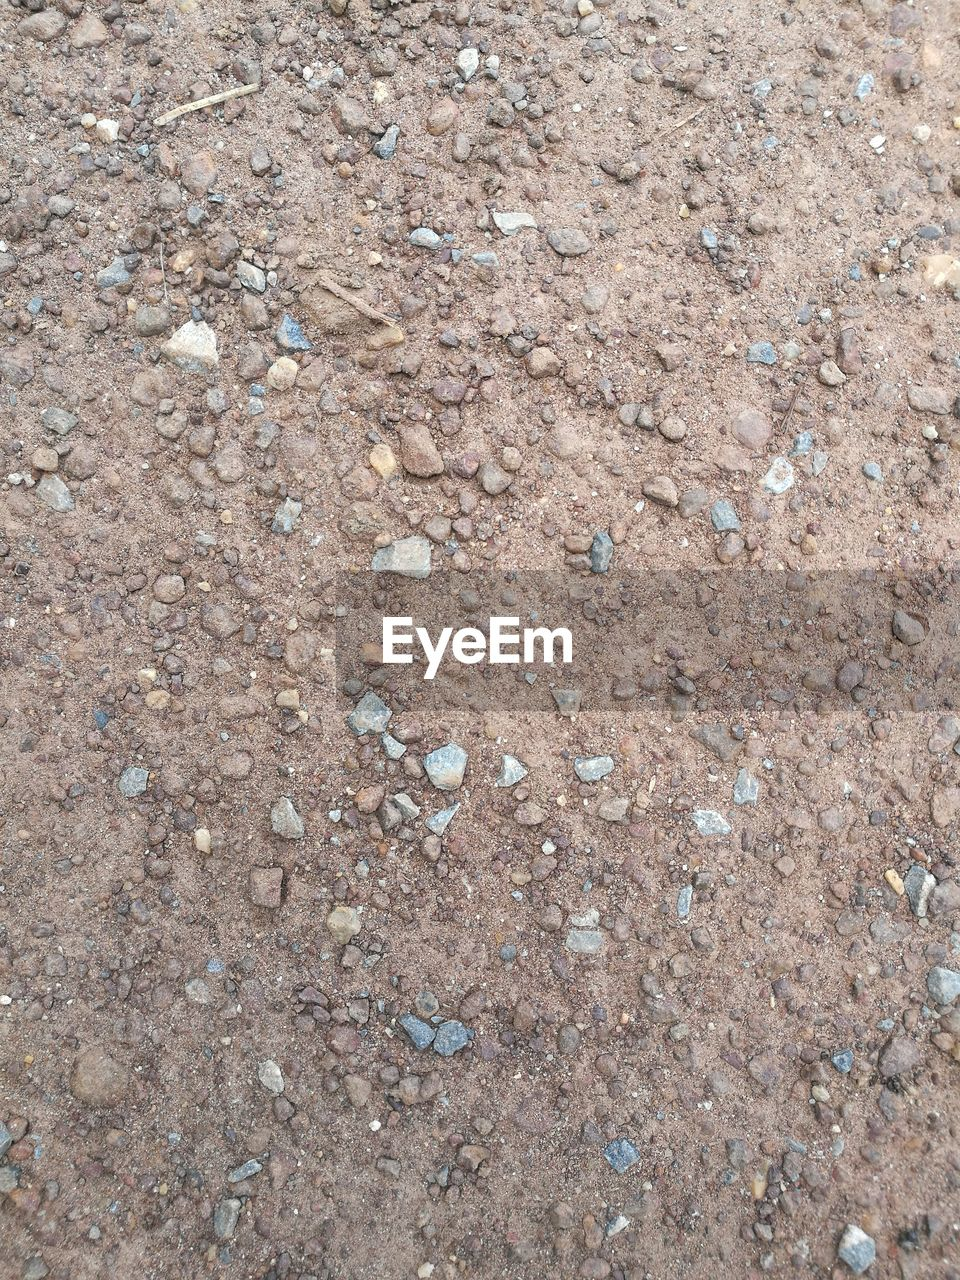 full frame, backgrounds, no people, textured, day, land, nature, close-up, high angle view, pattern, outdoors, rock, solid, brown, sand, rough, rock - object, abstract, dirt, stone, textured effect, concrete